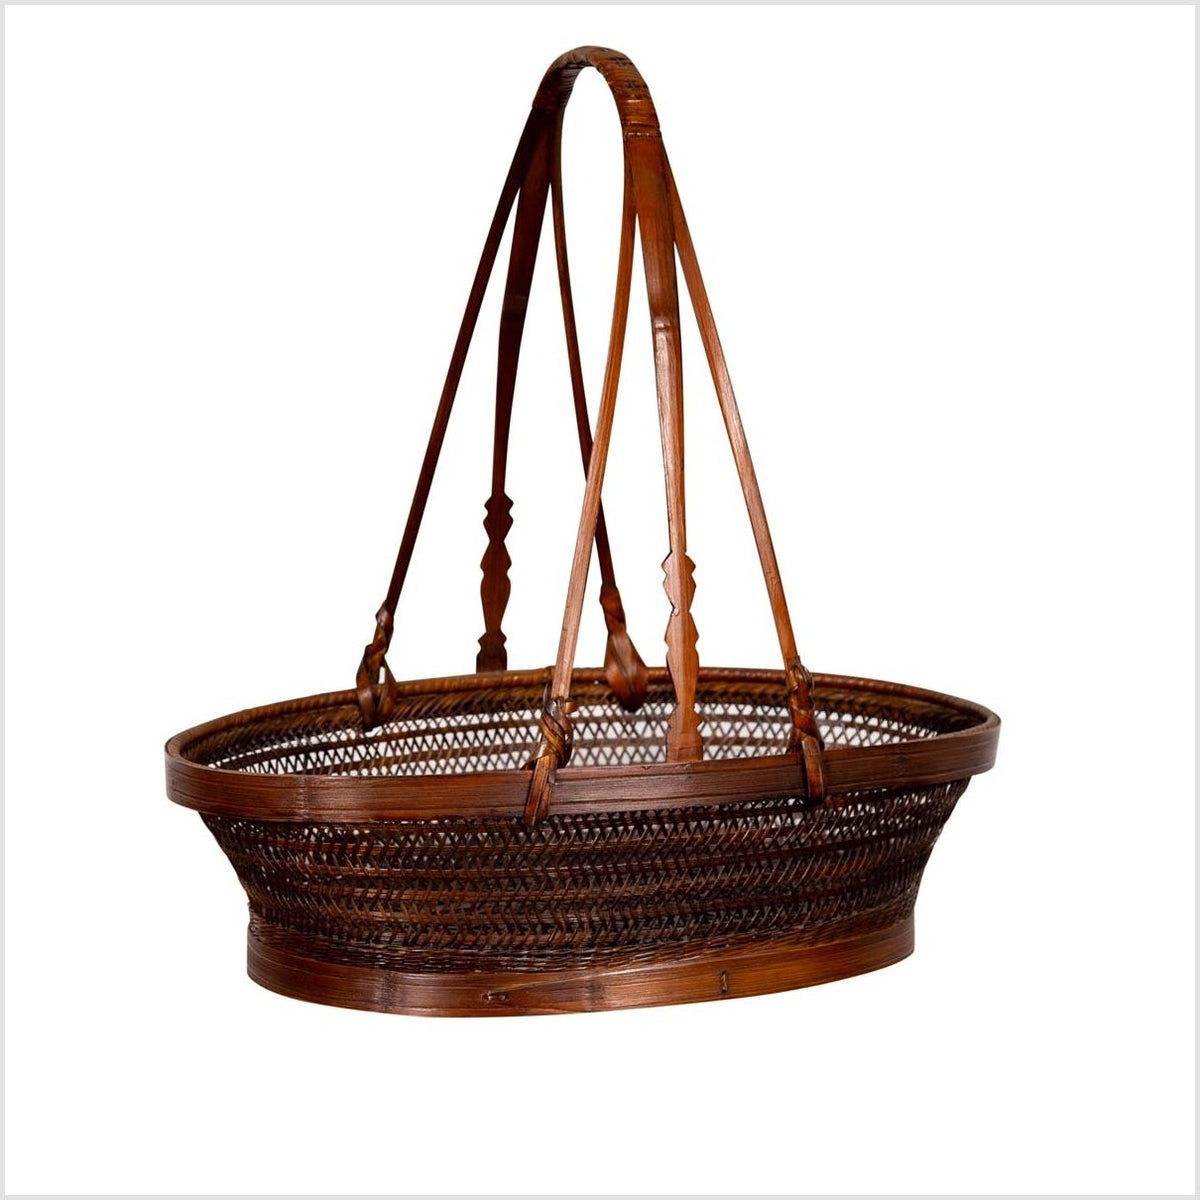 Vintage Chinese Woven Rattan Carrying Basket with Large Tripartite Handle